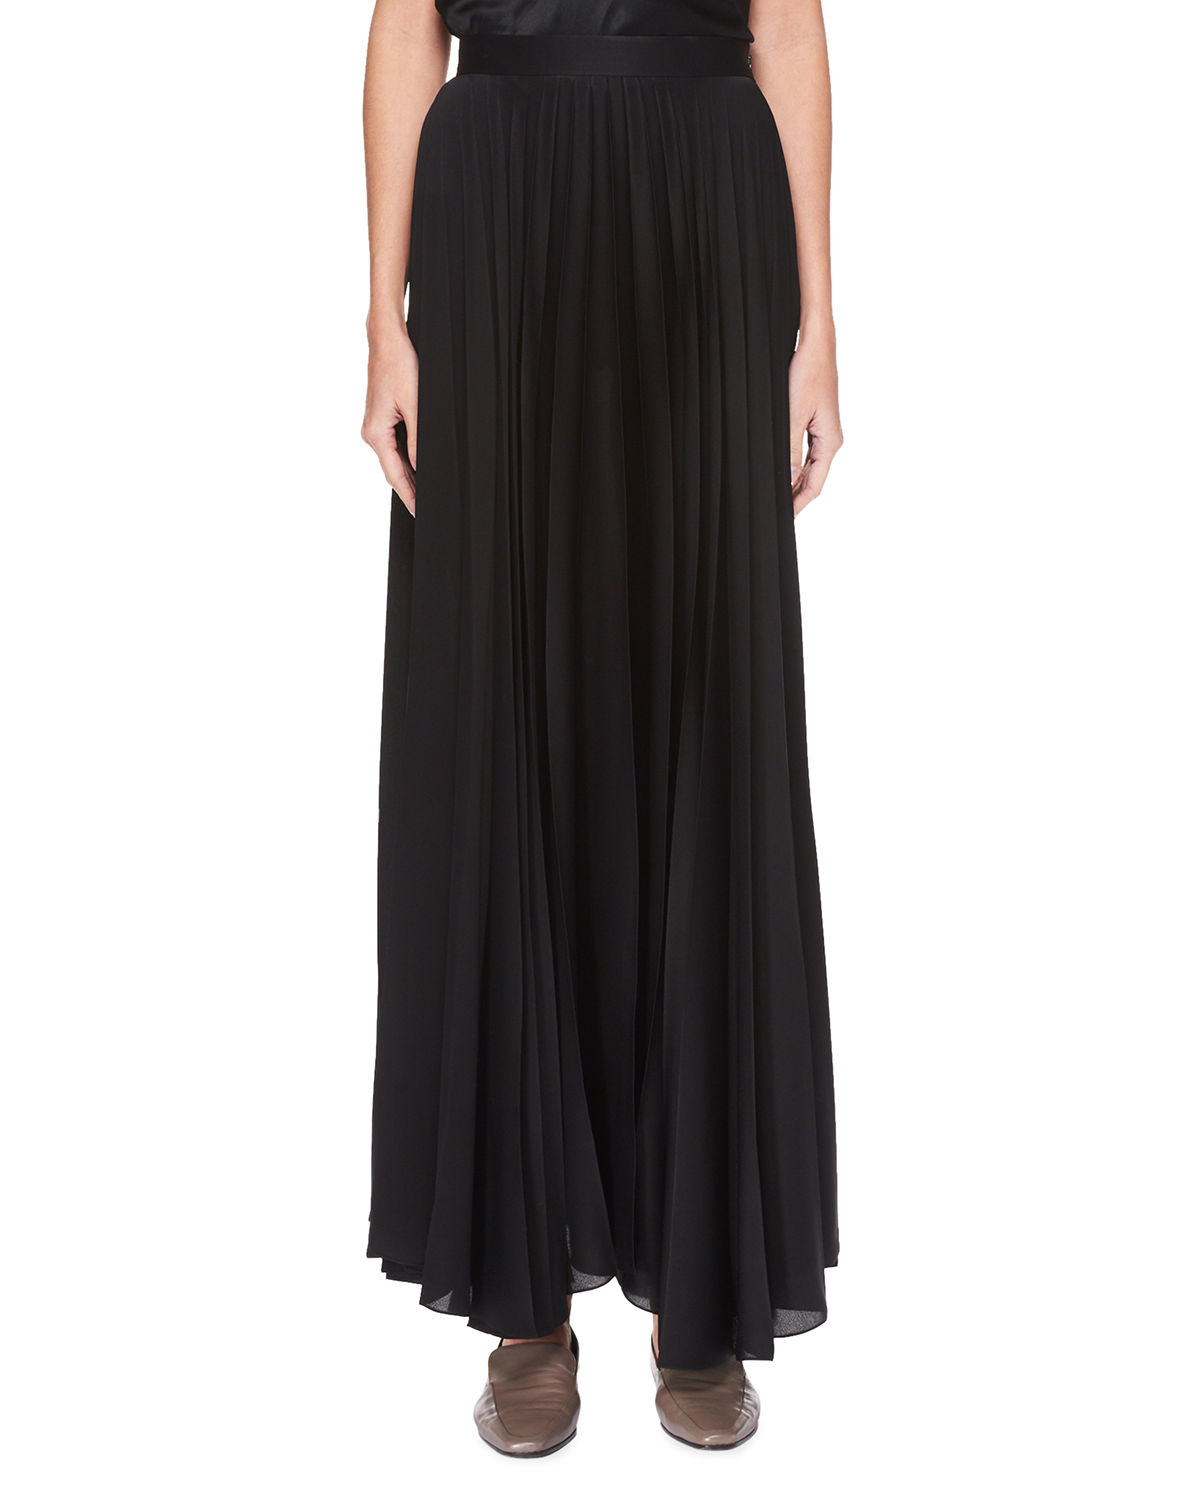 4d8e3a29ff the row maxi skirts for women - Buy best women's the row maxi skirts on  Cools.com Shop